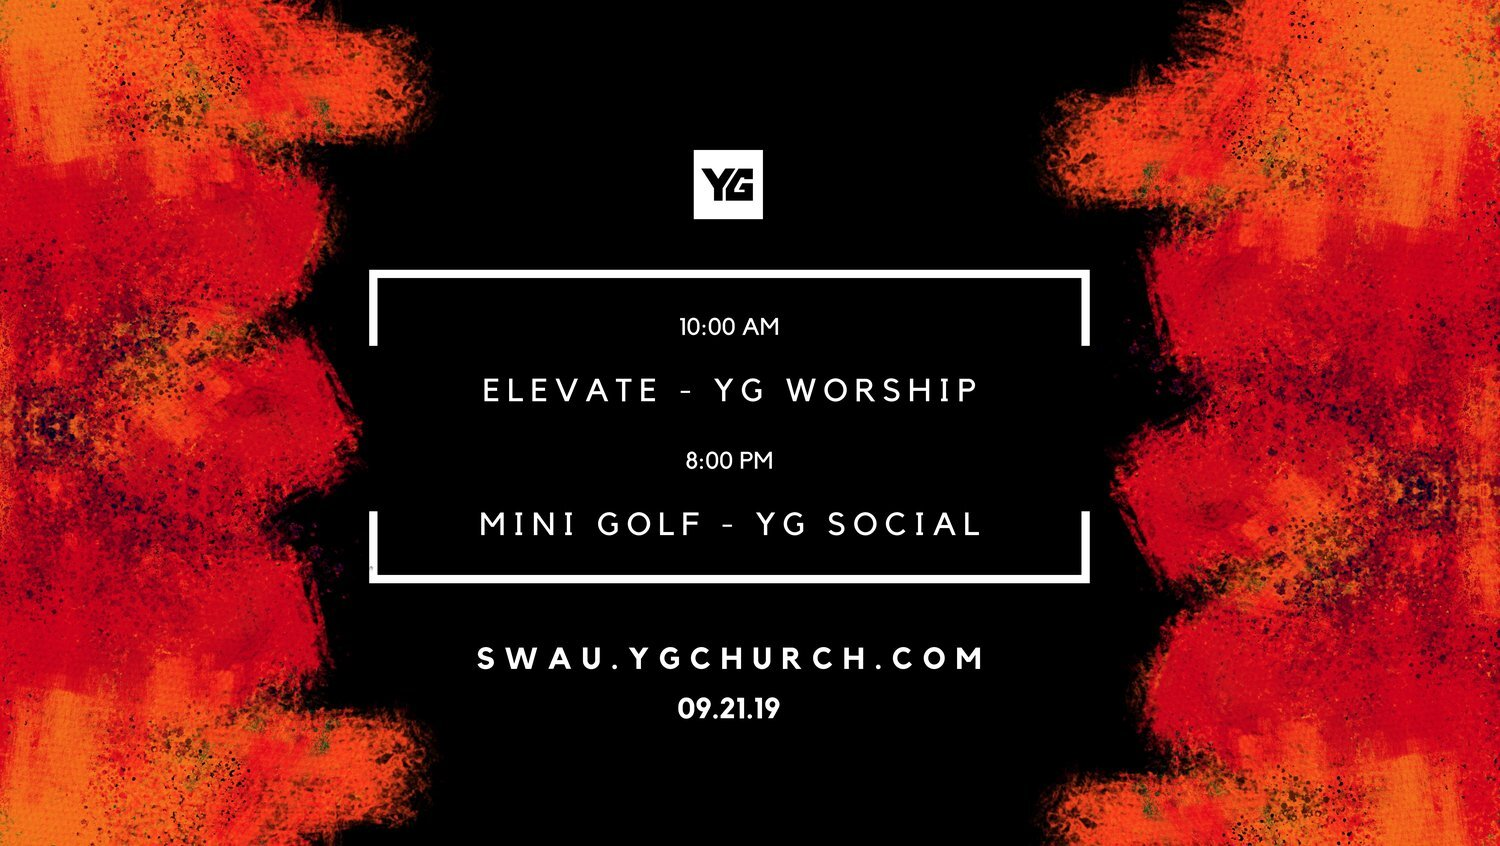 ATTENTION YOUNG ADULTS, ESPECIALLY COLLEGIANS!  We've partnered with Elevate Ministries, SWAU, and YG to make this an inspiring and fun weekend for all our young adults no matter where you are going to college/university. Join us at Elevate Ministries as YG leads out at their worship service. Continental breakfast will be available, 9:15AM, in the lobby preceding the worship experience. Pastor Allan Martin will be preaching. swau.ygchurch.com   Saturday night , following a collaborative sundown worship experience in Burleson, we are heading to  Buffalo Nickels Mini Golf & Arcade  for a fun evening in Burleson. YG's got your entry fee covered and Southwestern Adventist University's Student Association team will be organizing transportation. Plan on joining us for the entire day! For more information contact info@ygchurch.com